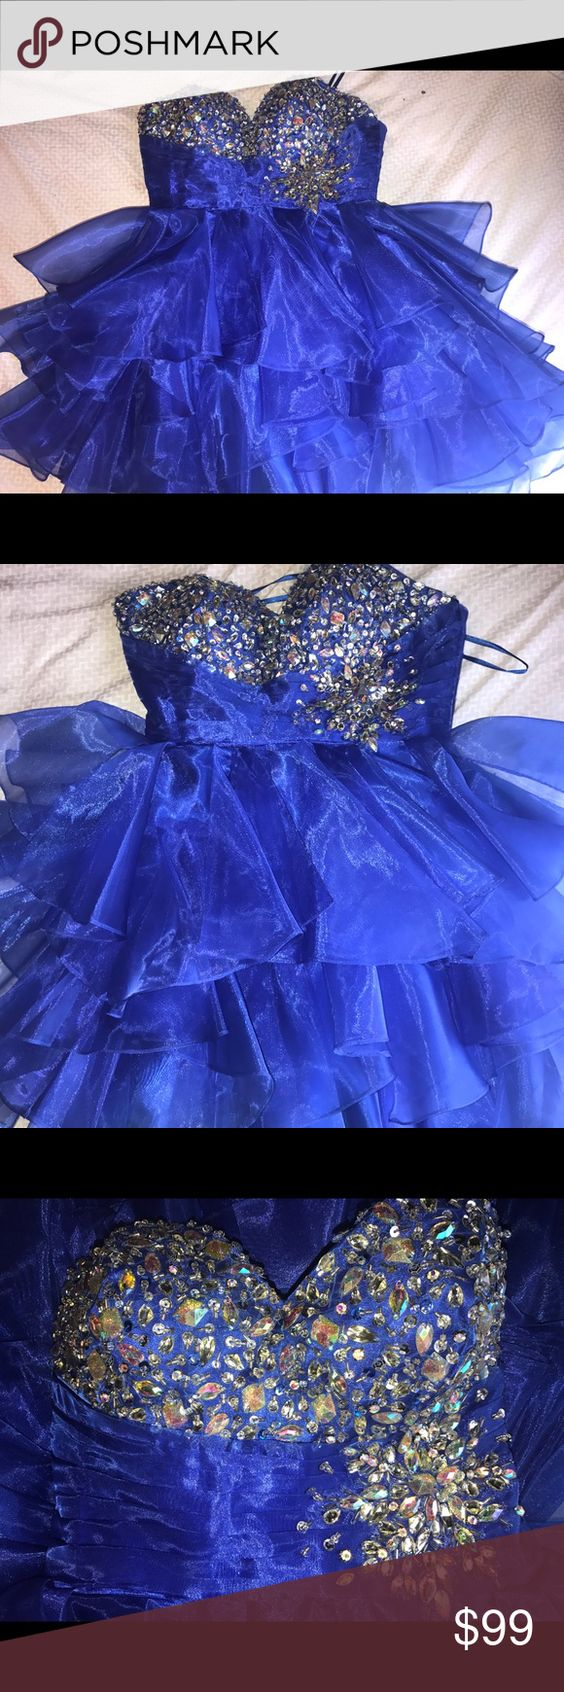 Royal blue short homecomingprom dress